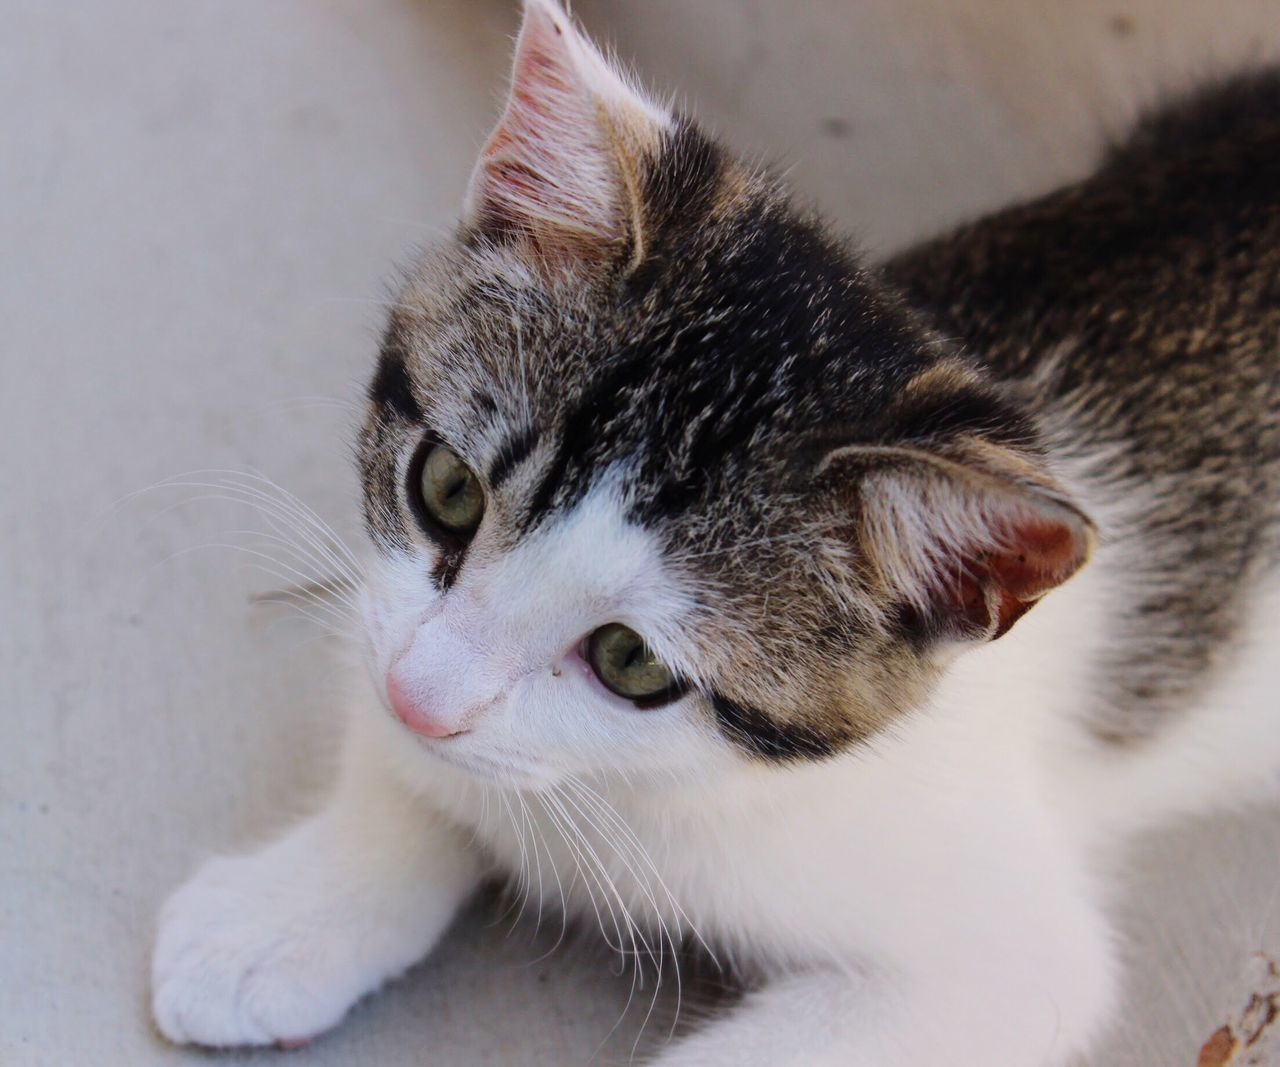 domestic cat, pets, domestic animals, animal themes, one animal, feline, mammal, cat, whisker, no people, close-up, indoors, portrait, day